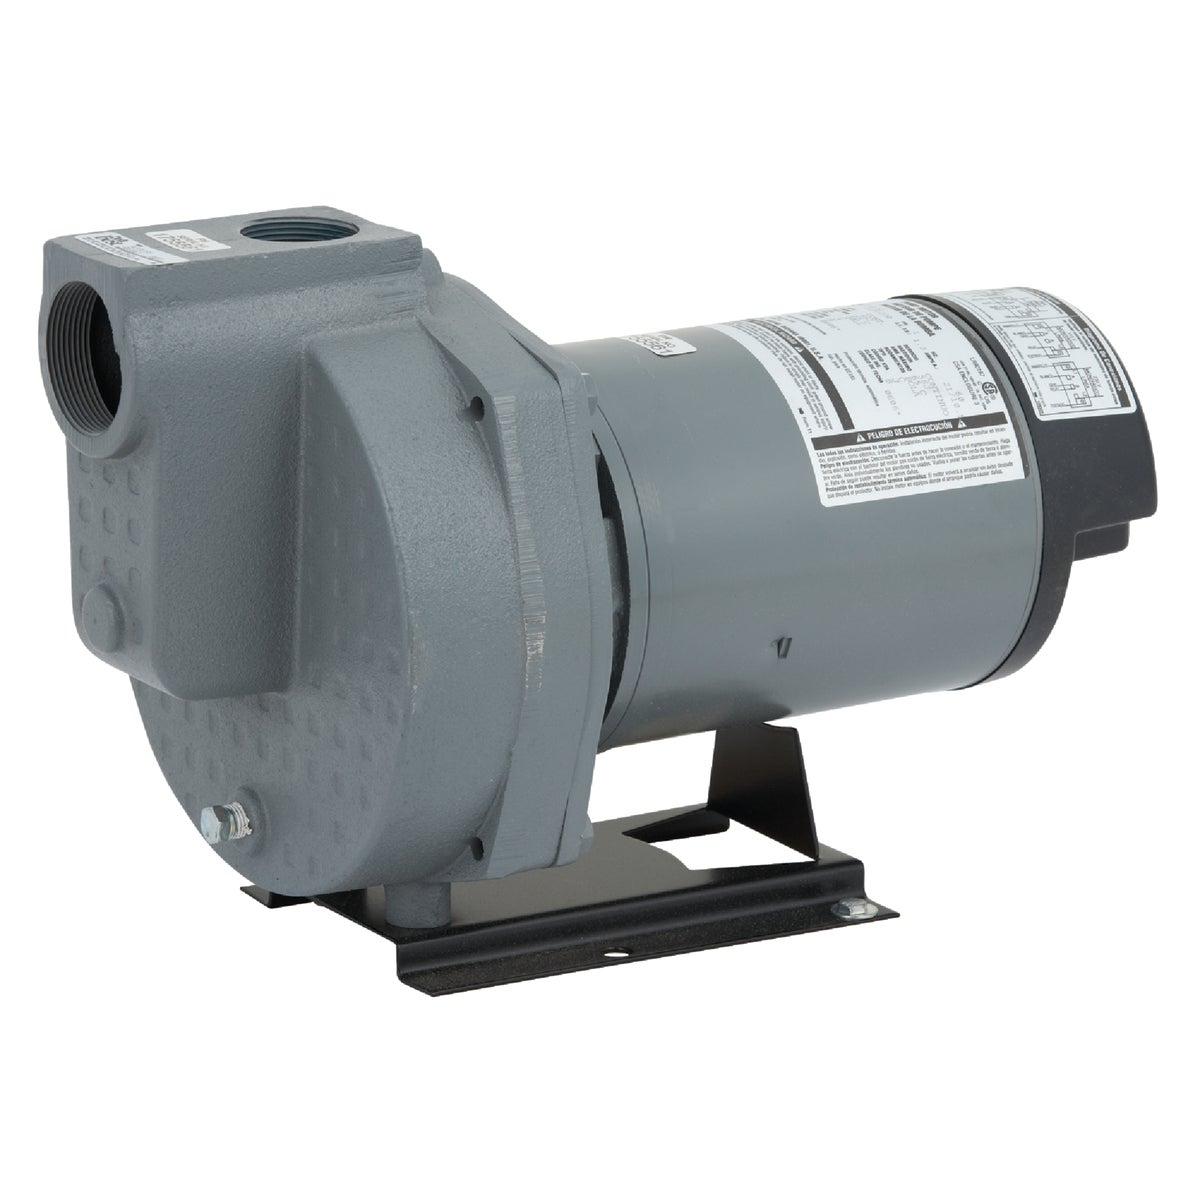 1-1/2HP IRRIGATION PUMP - HSPJ15P1 by Star Water Systems